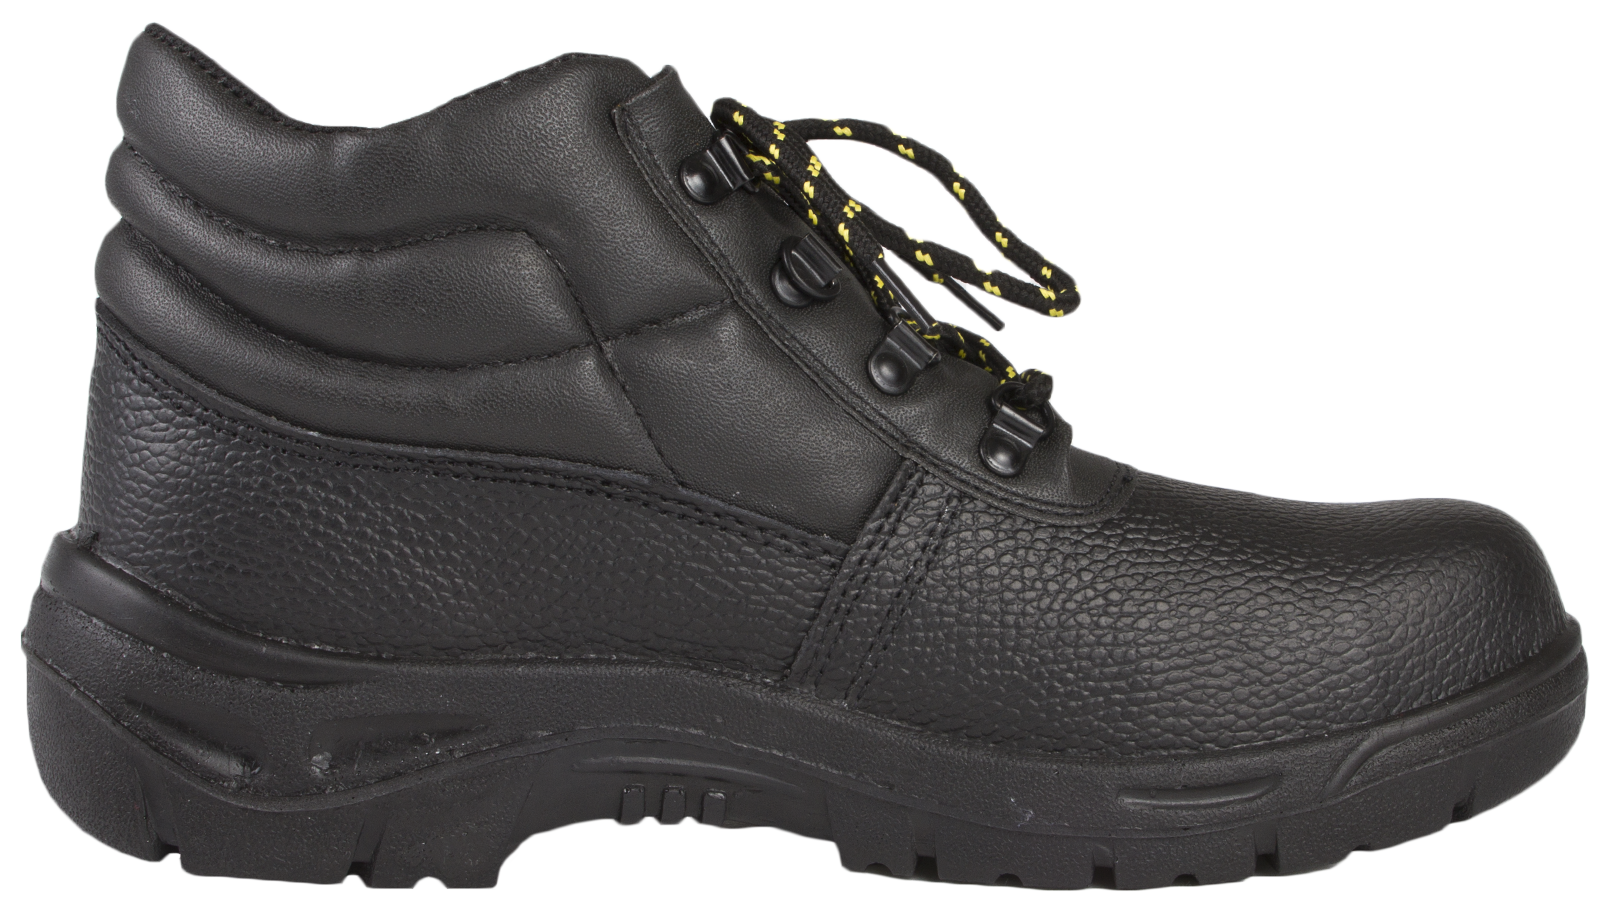 Mens Steel Toe Cap Safety Black Leather Ankle Boots Non Slip Work Shoes Size | EBay